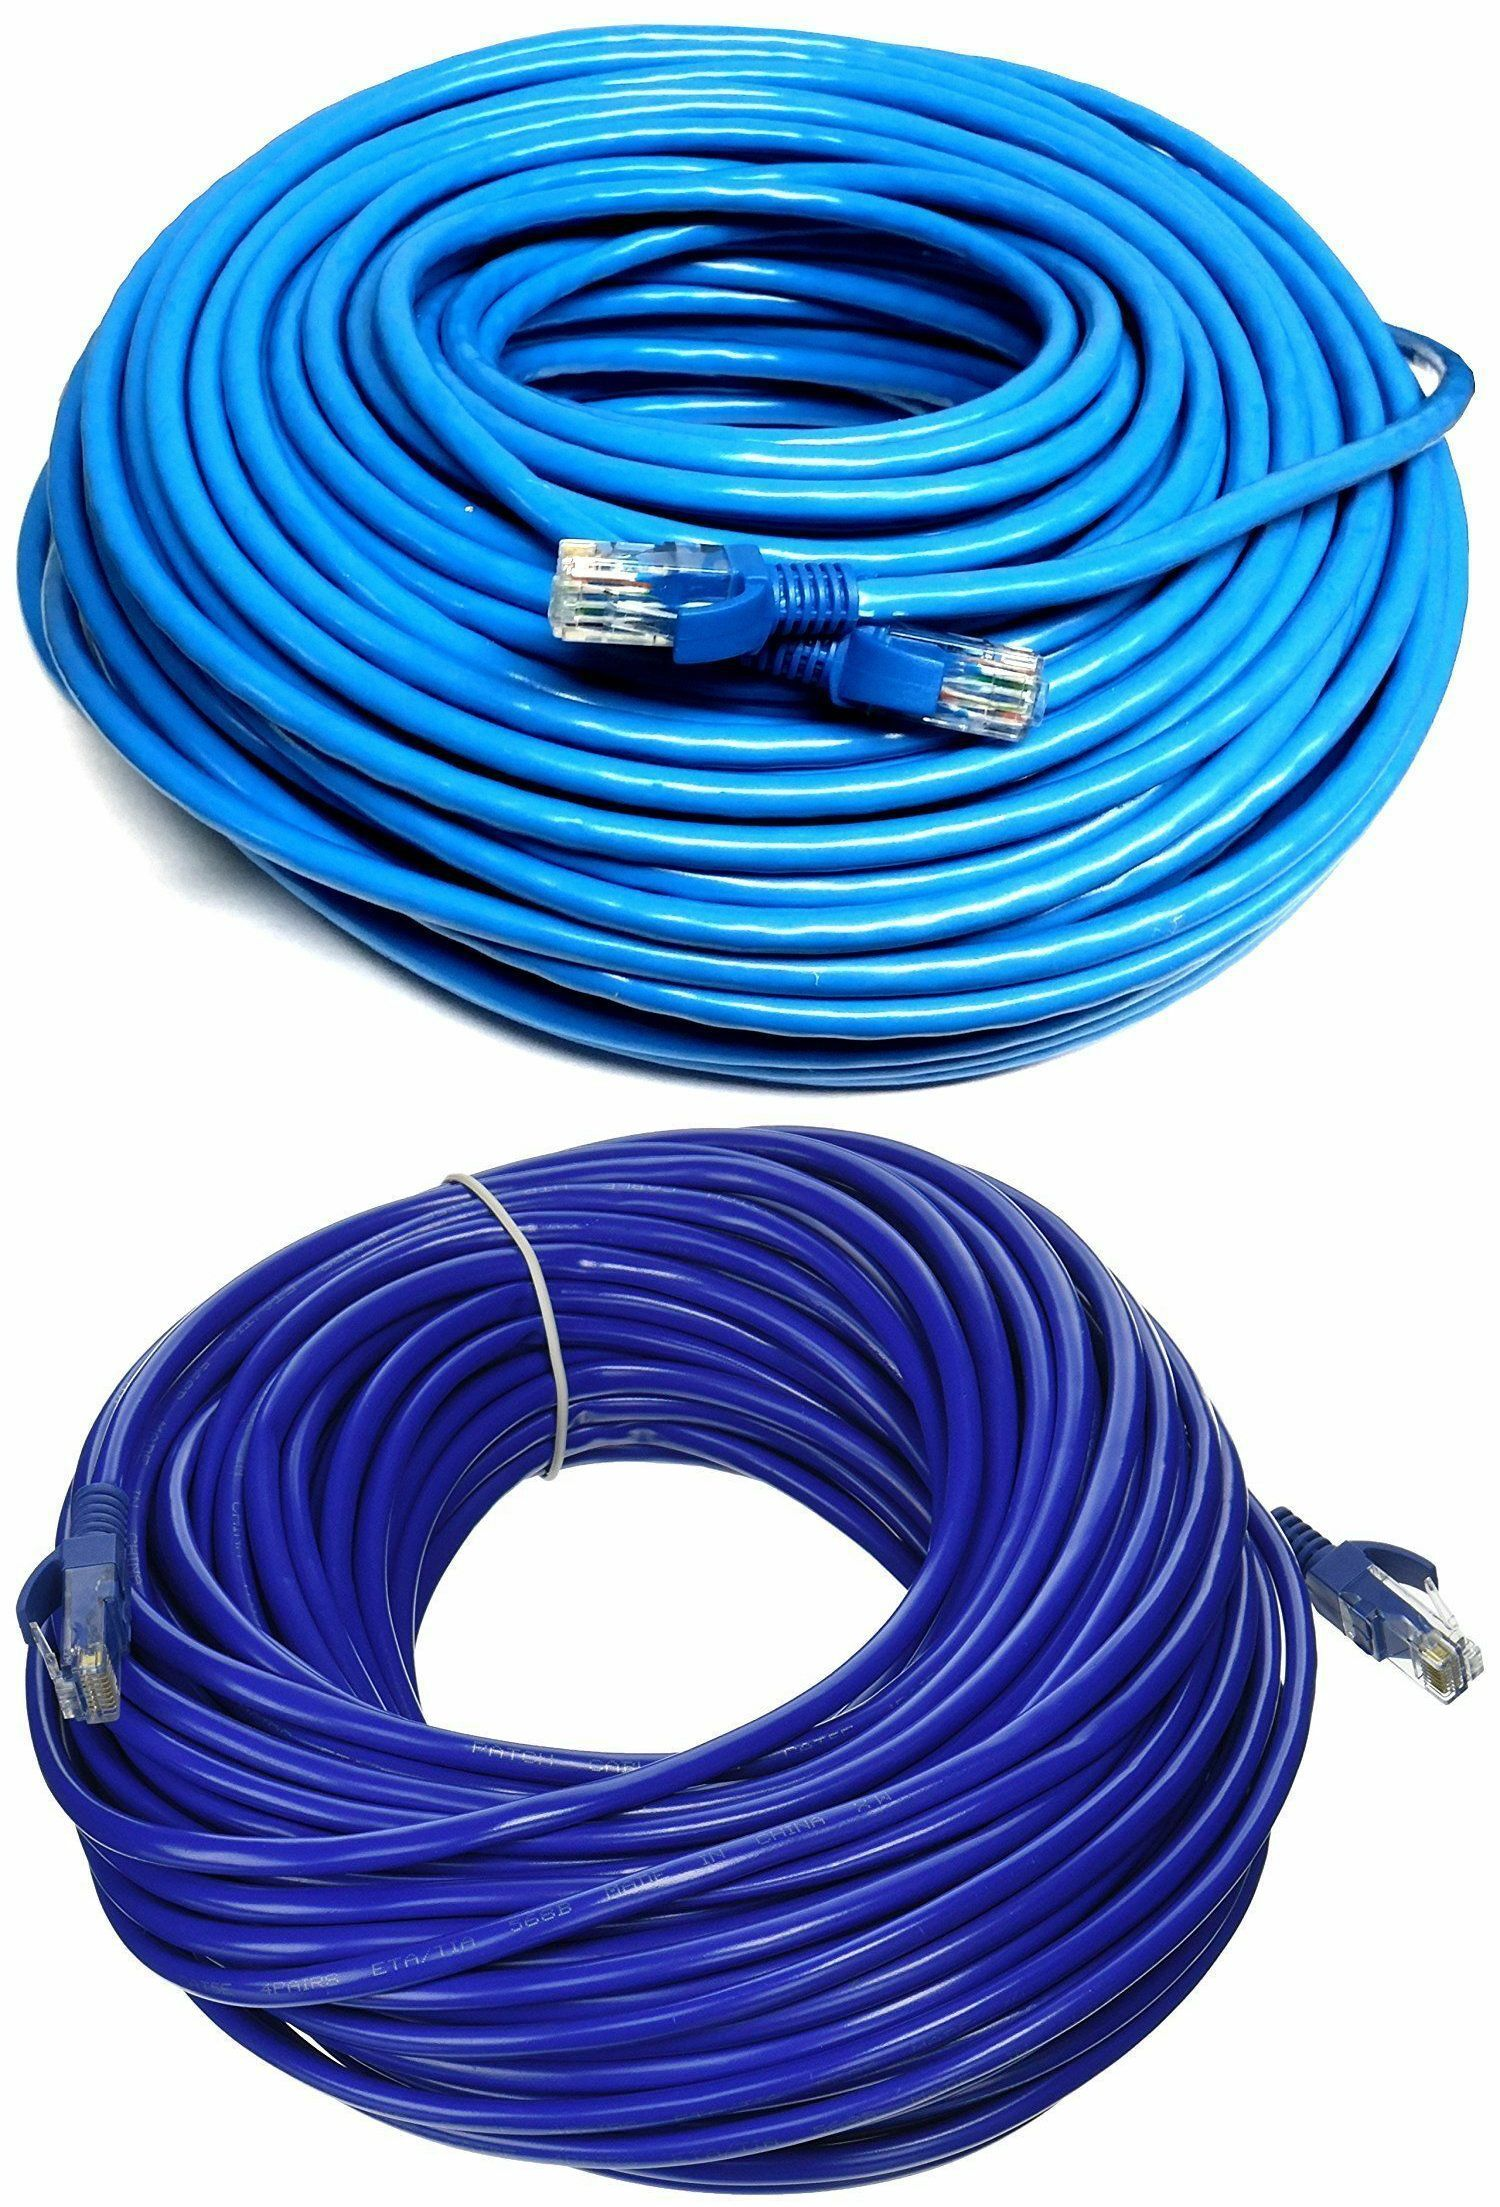 Lot CAT6 Outdoor Cable Blue RJ45 Solid Pure Copper Ethernet Cable 50ft to 100ft